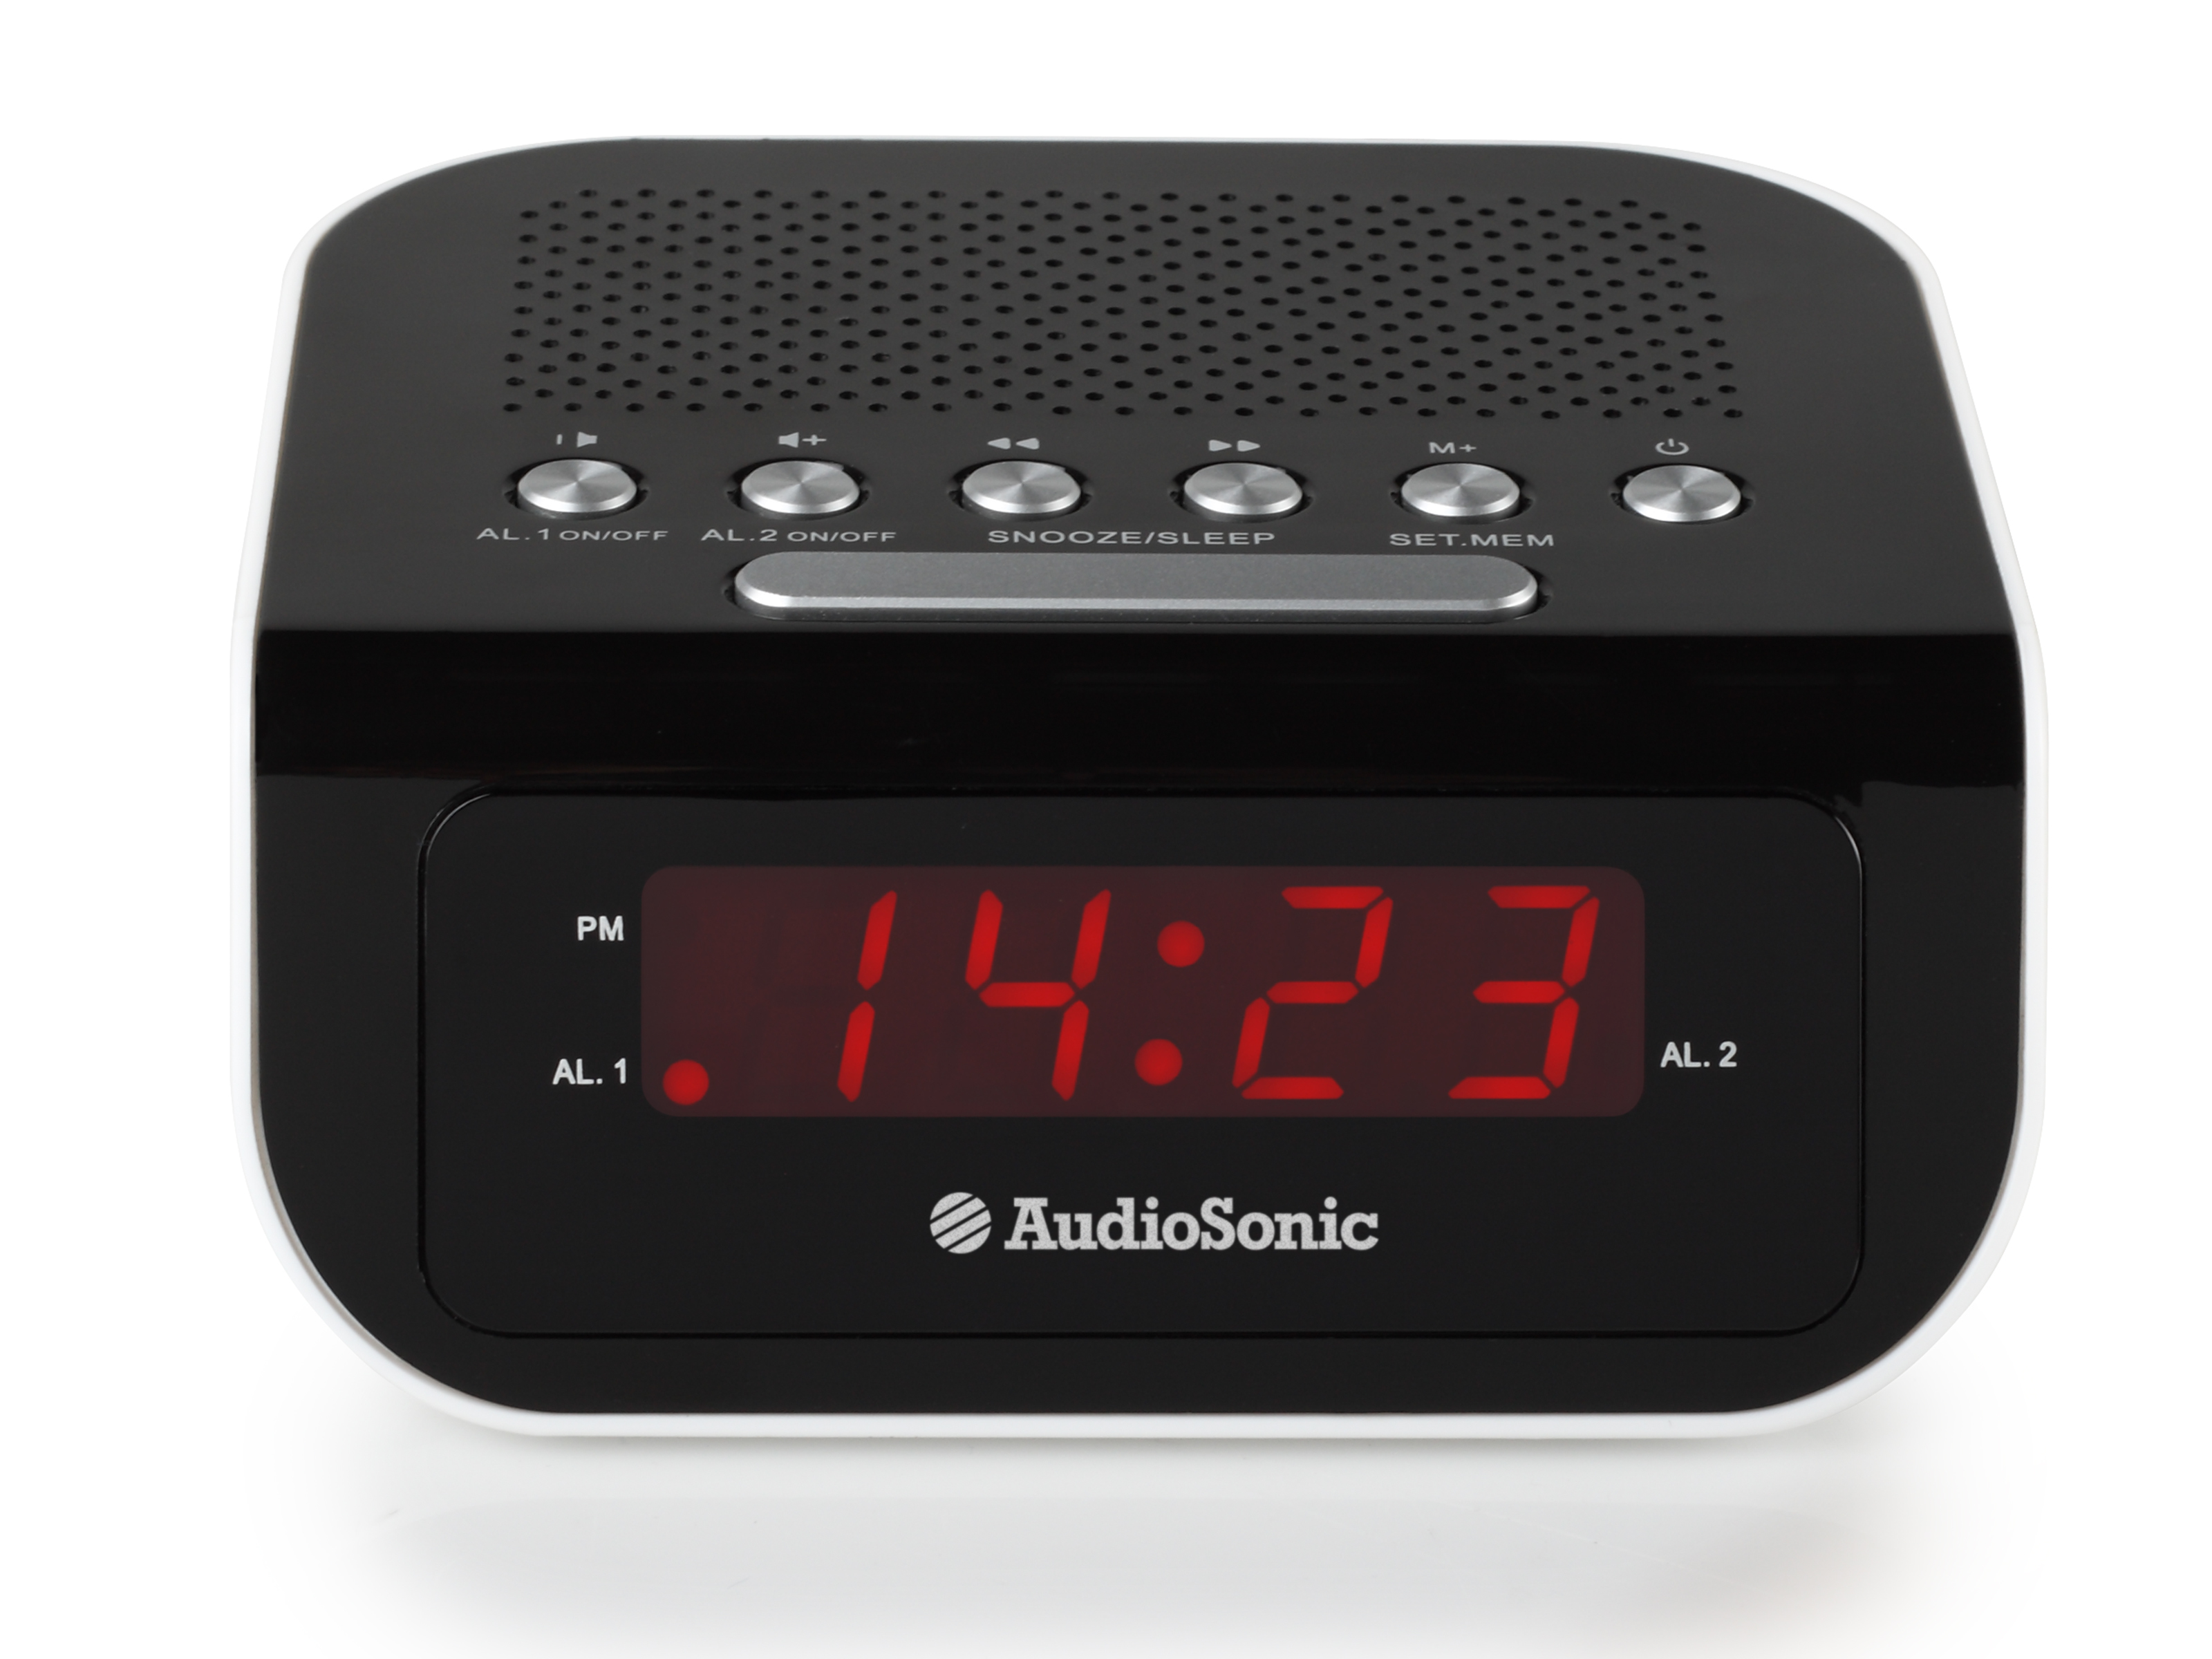 AudioSonic CL-1473 Orologio Digitale Nero, Bianco radio